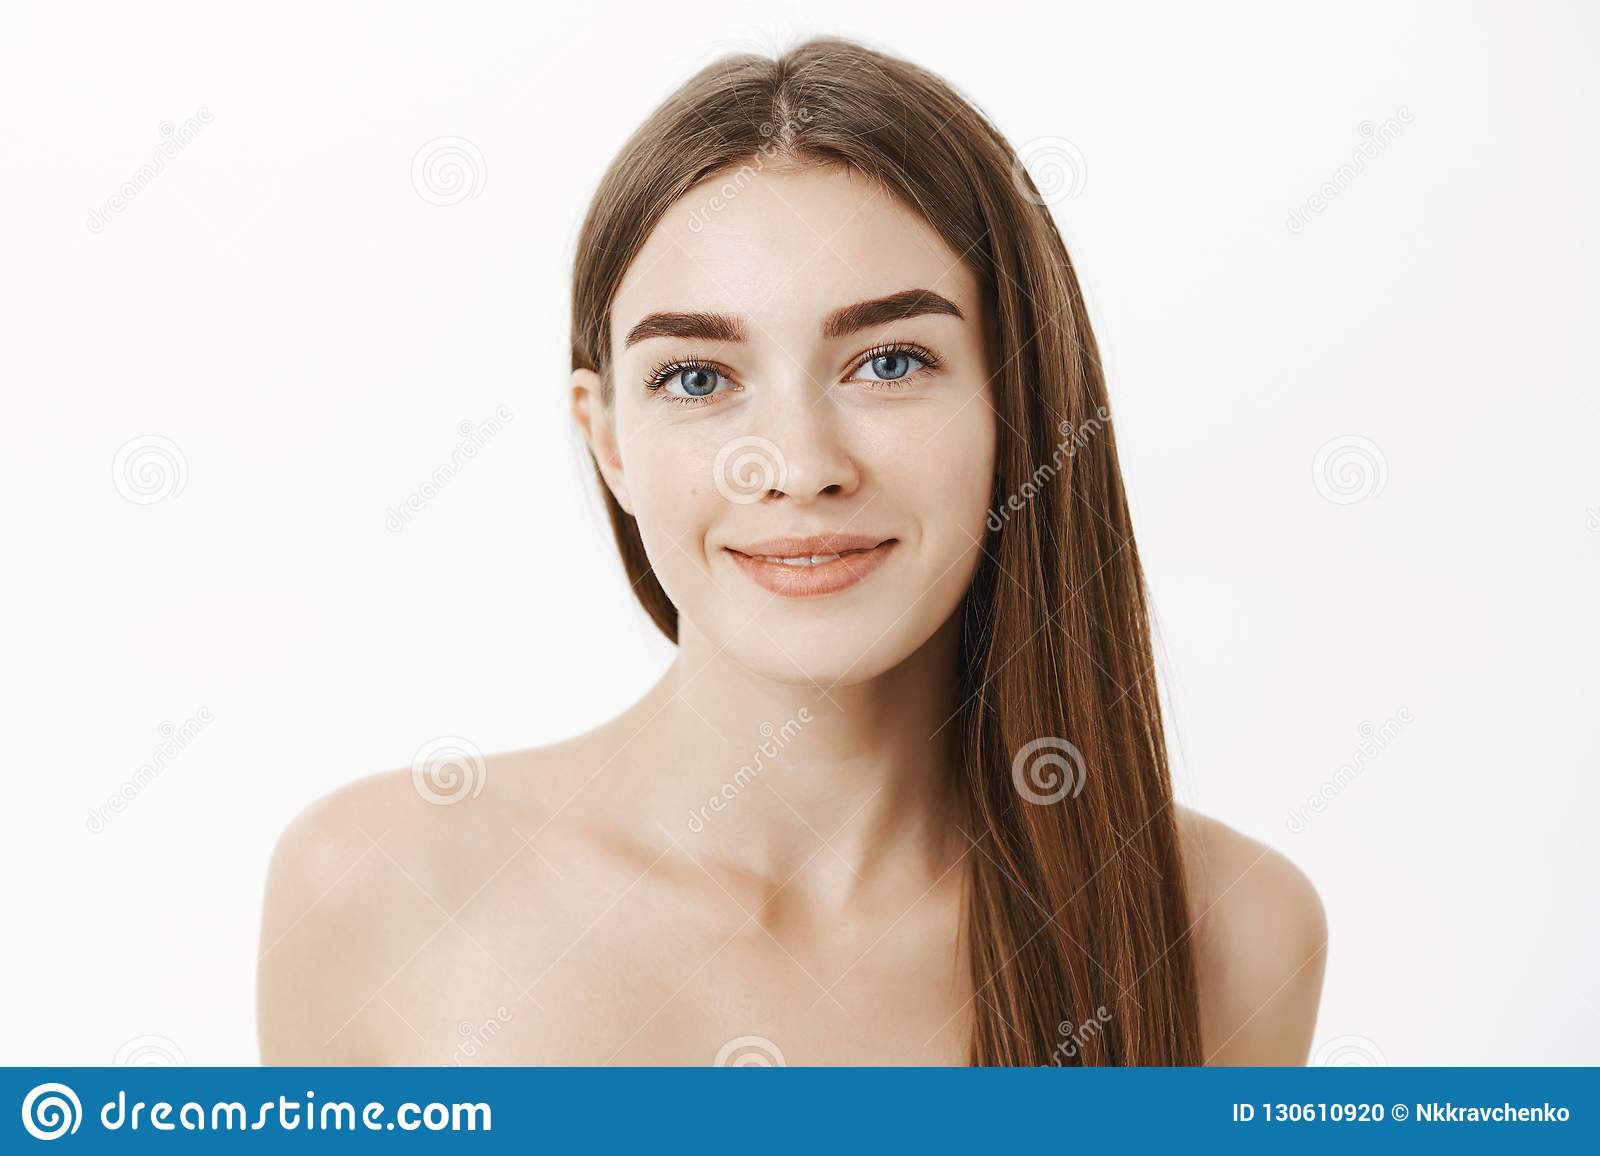 Looking up at a standing naked woman